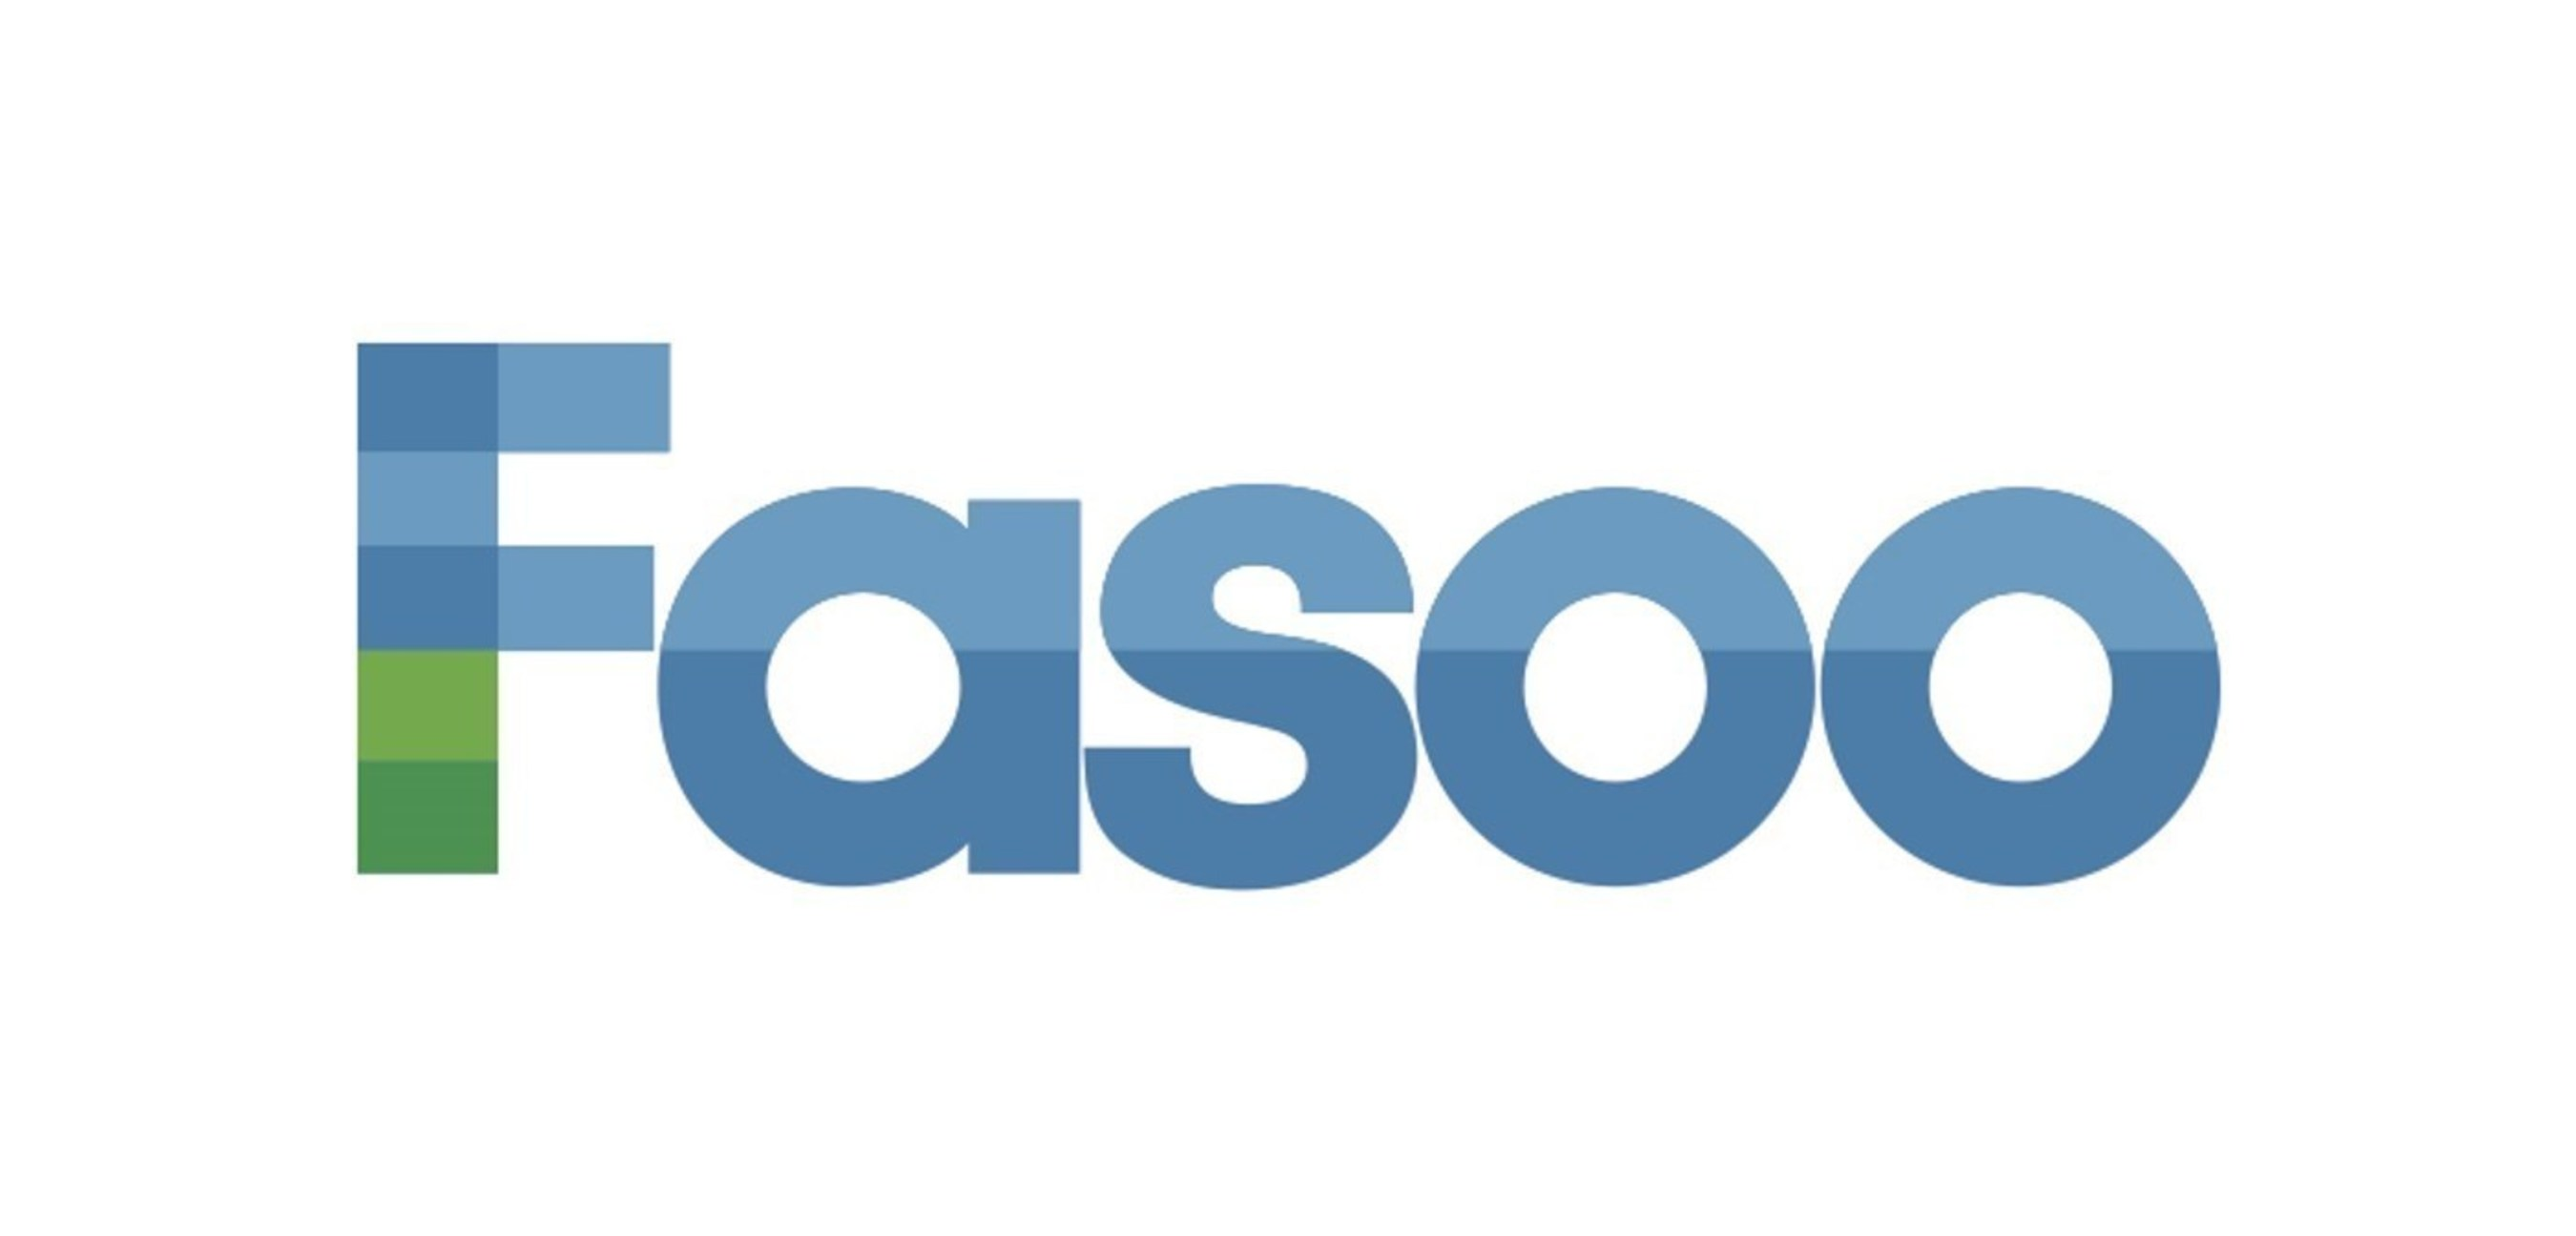 Fasoo provides software to protect and manage your valuable assets in the ever changing digital world. Since ...